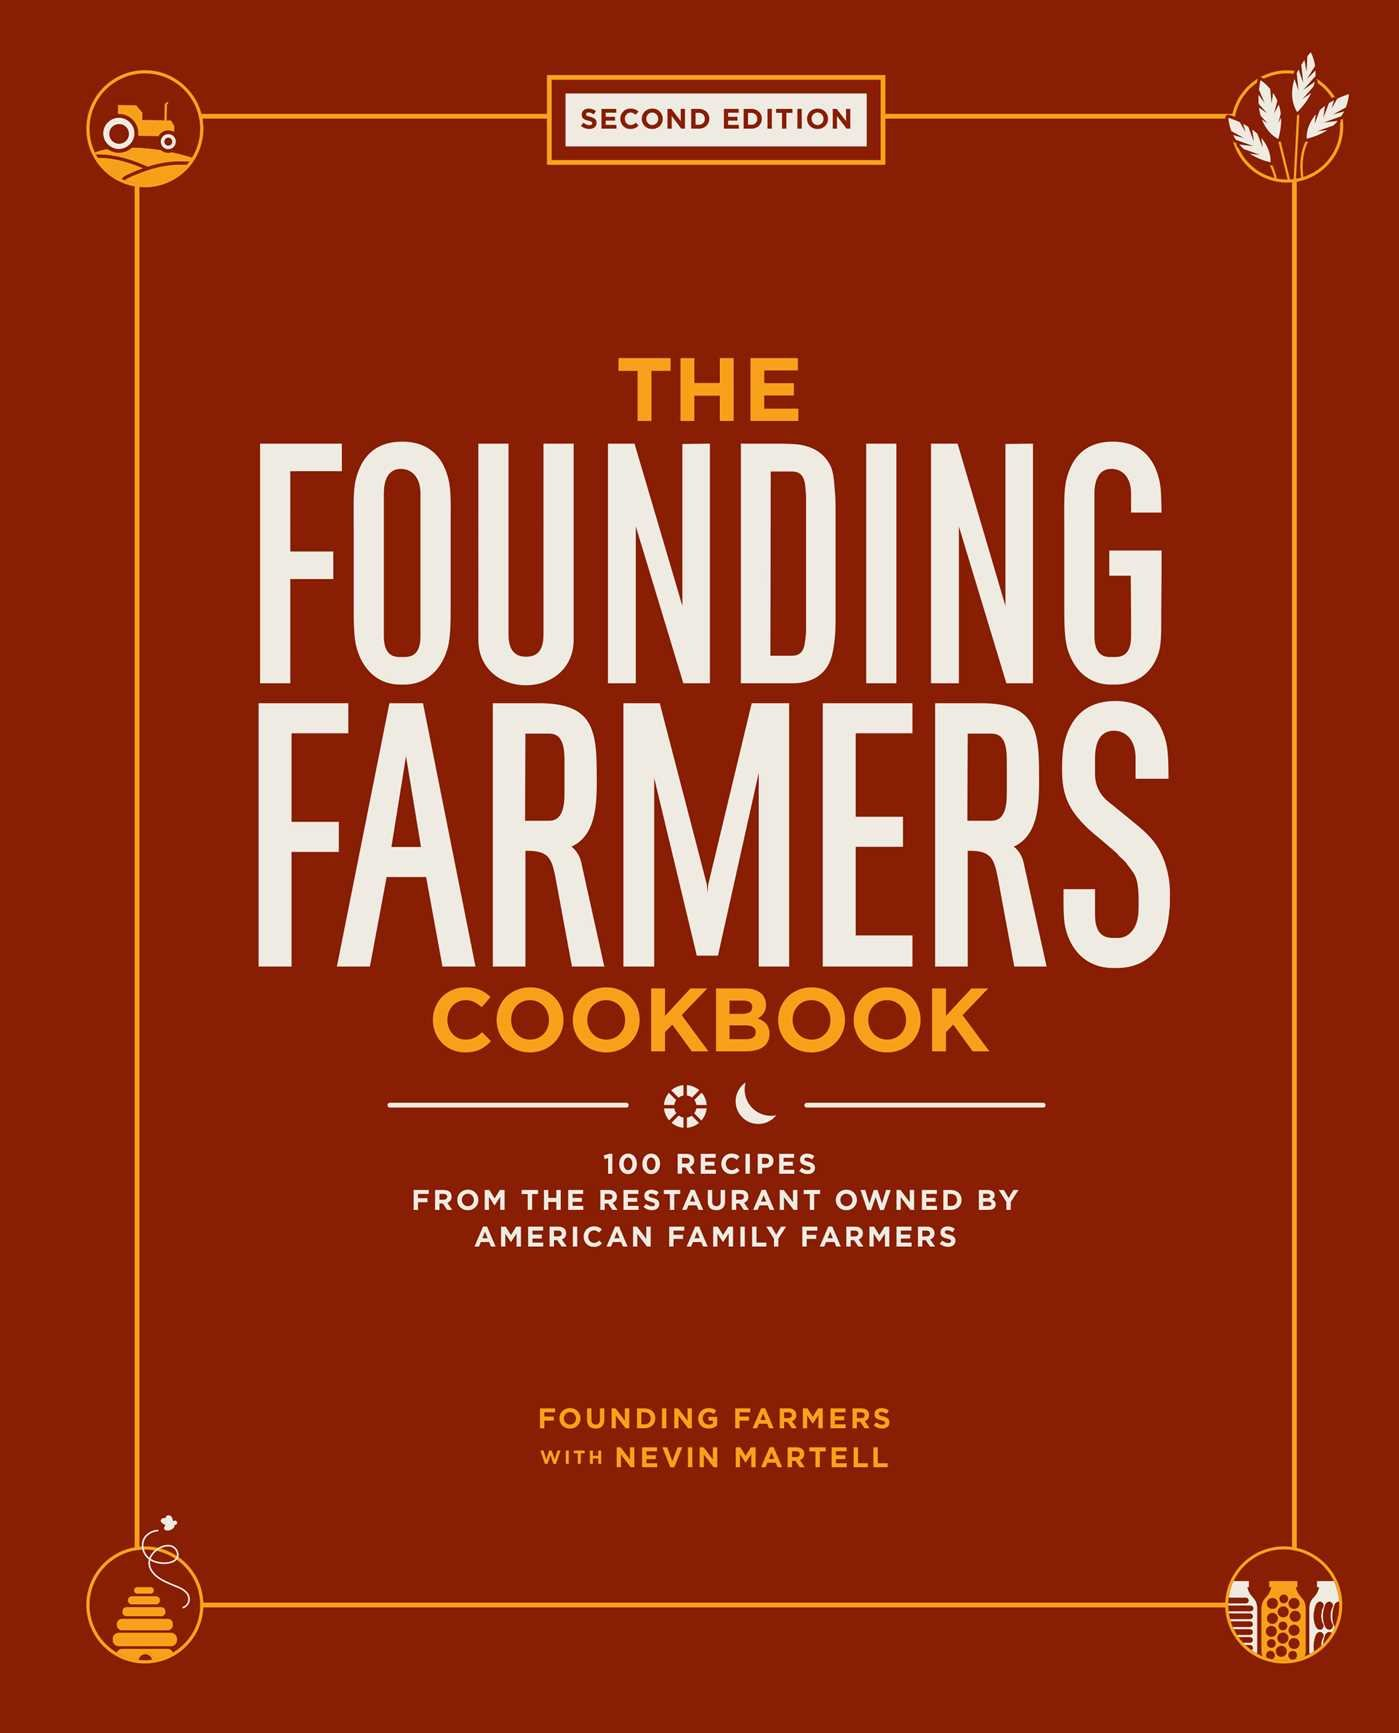 The Founding Farmers Cookbook, Second Edition: 100 Recipes From The Restaurant Owned By American Family Farmers